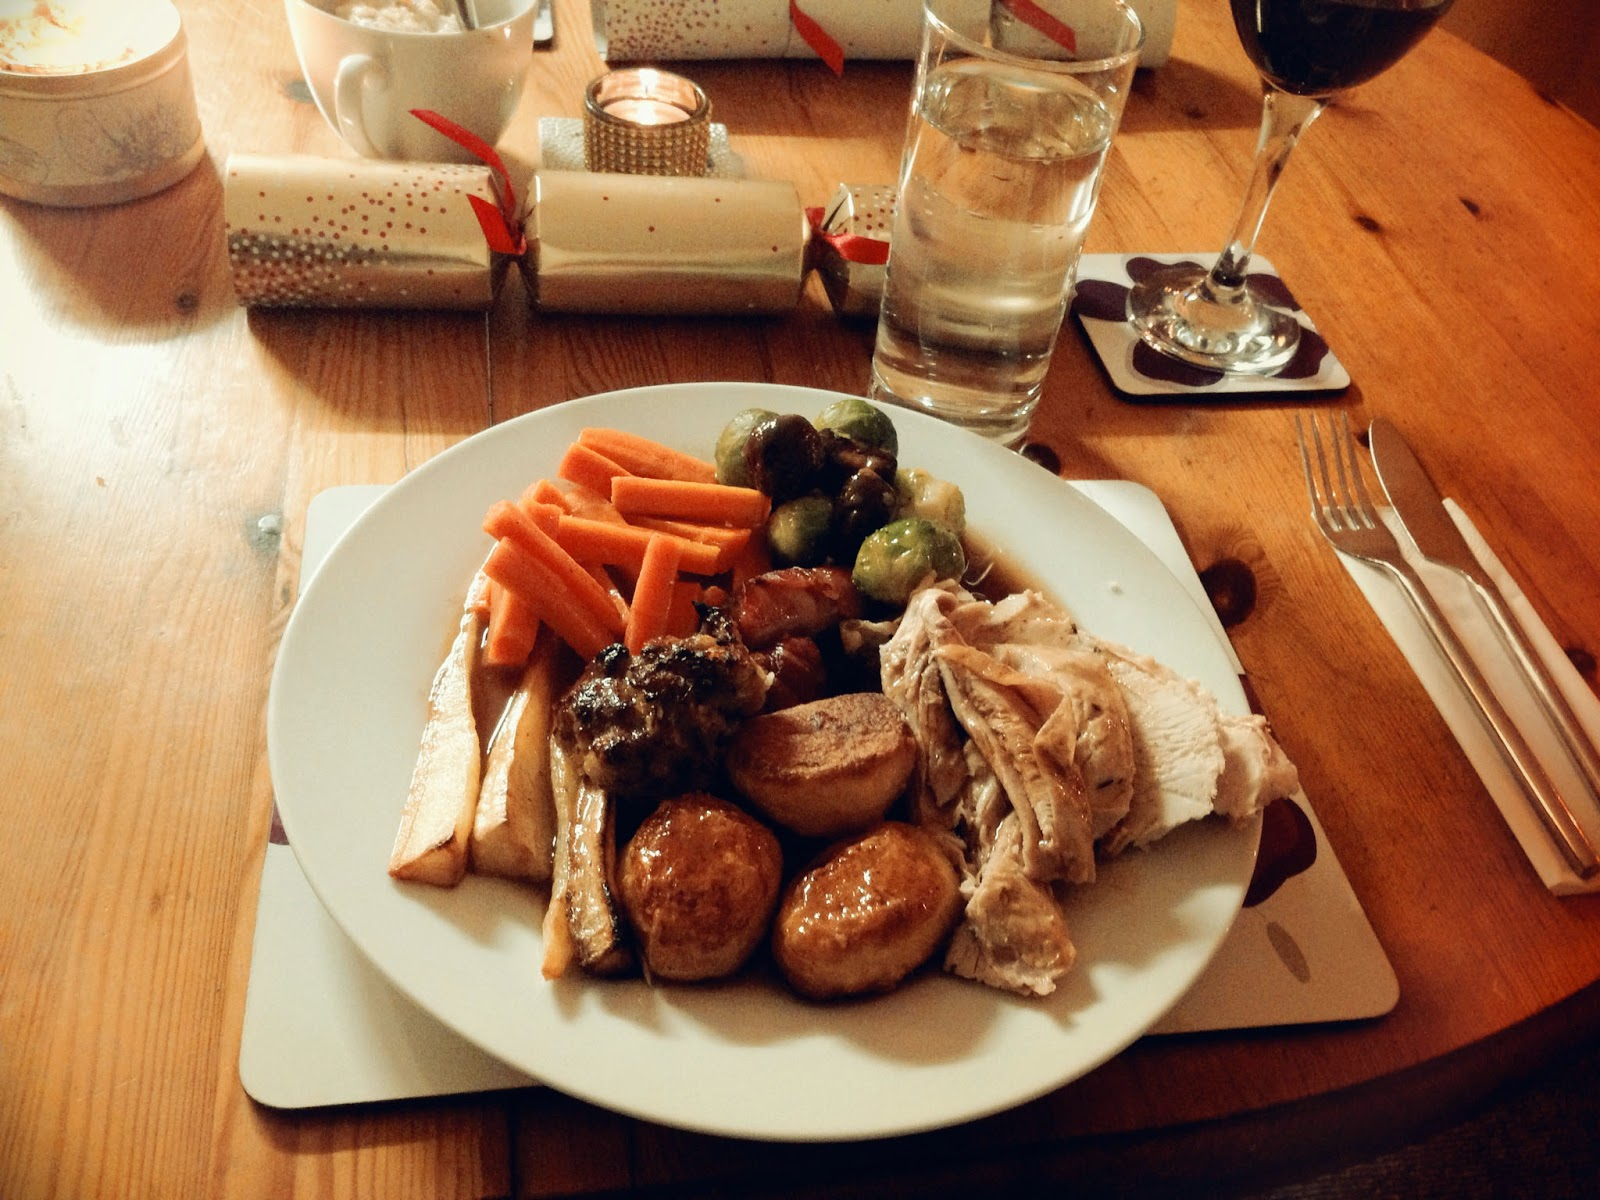 Traditional English Christmas Dinner.Julie Pennell A Traditional Christmas Dinner England Style